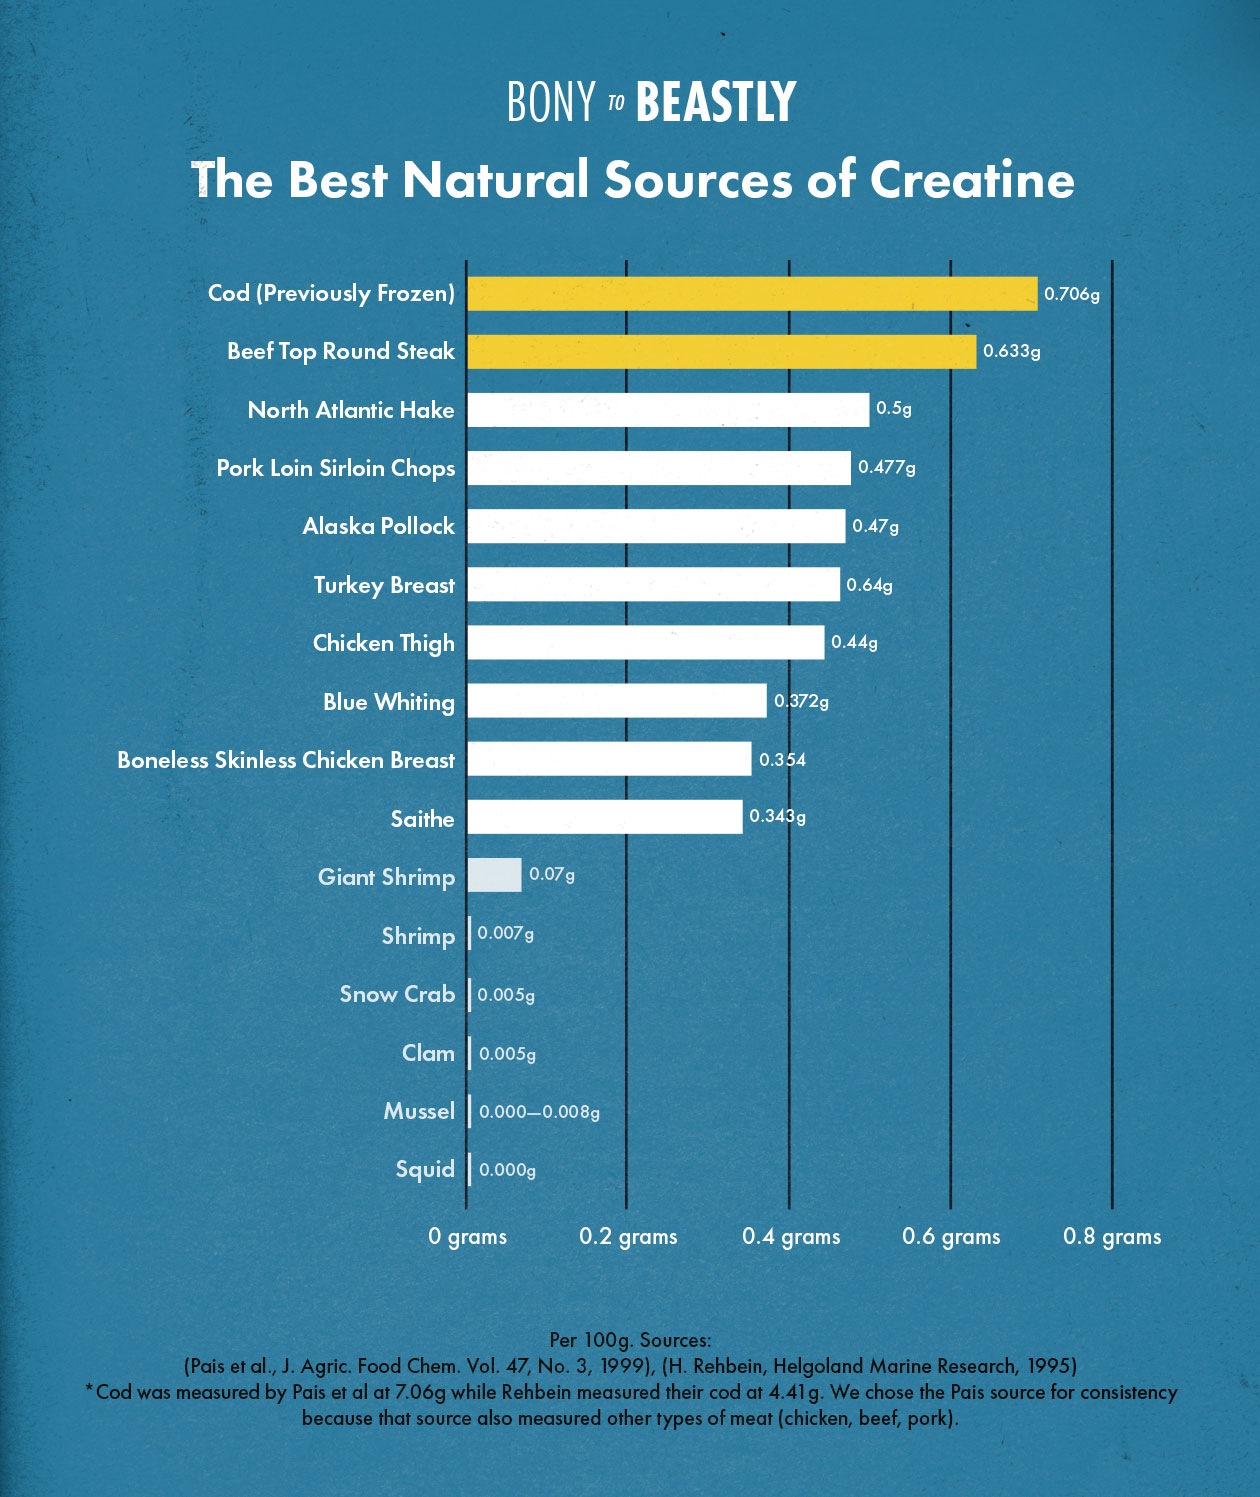 The Best Natural Food Sources of Creatine, Chart Made By Bony to Beastly